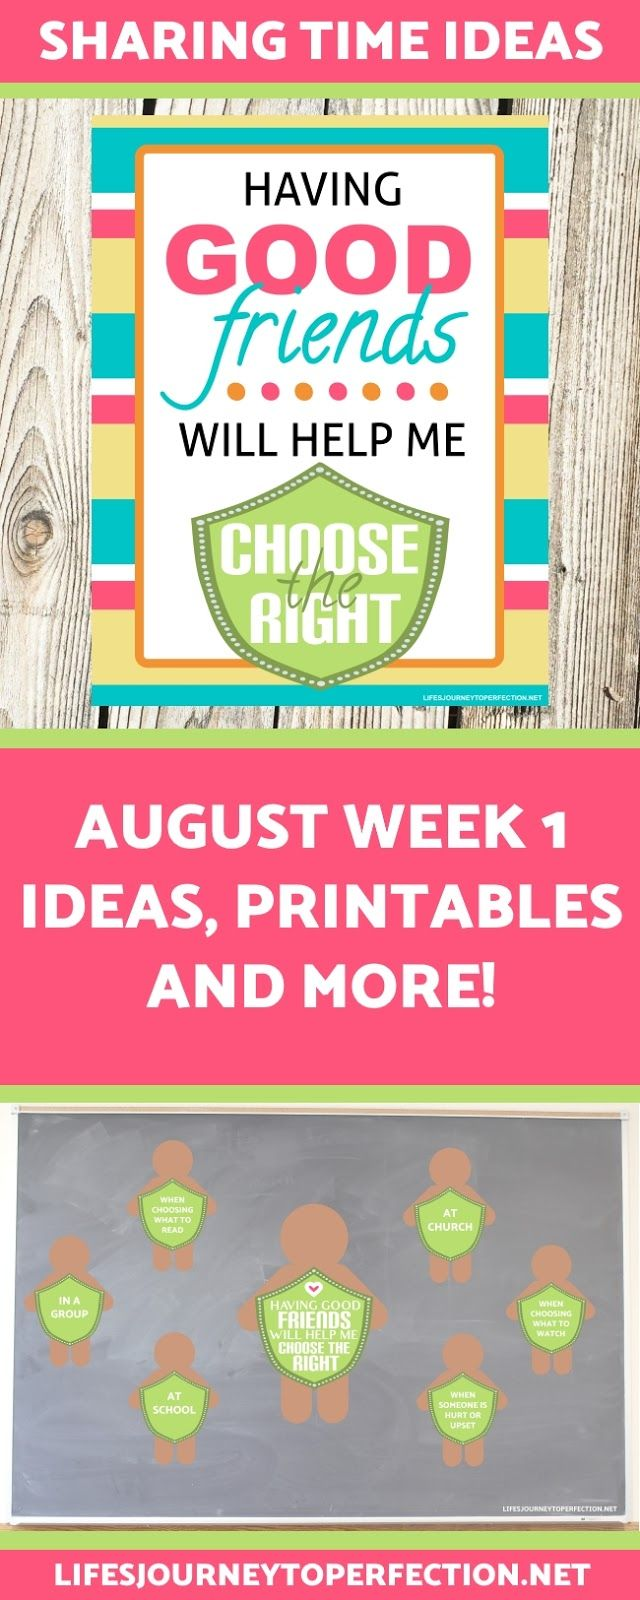 2017 LDS Sharing Time Ideas for August Week 1: Having good friends will help me choose the right.